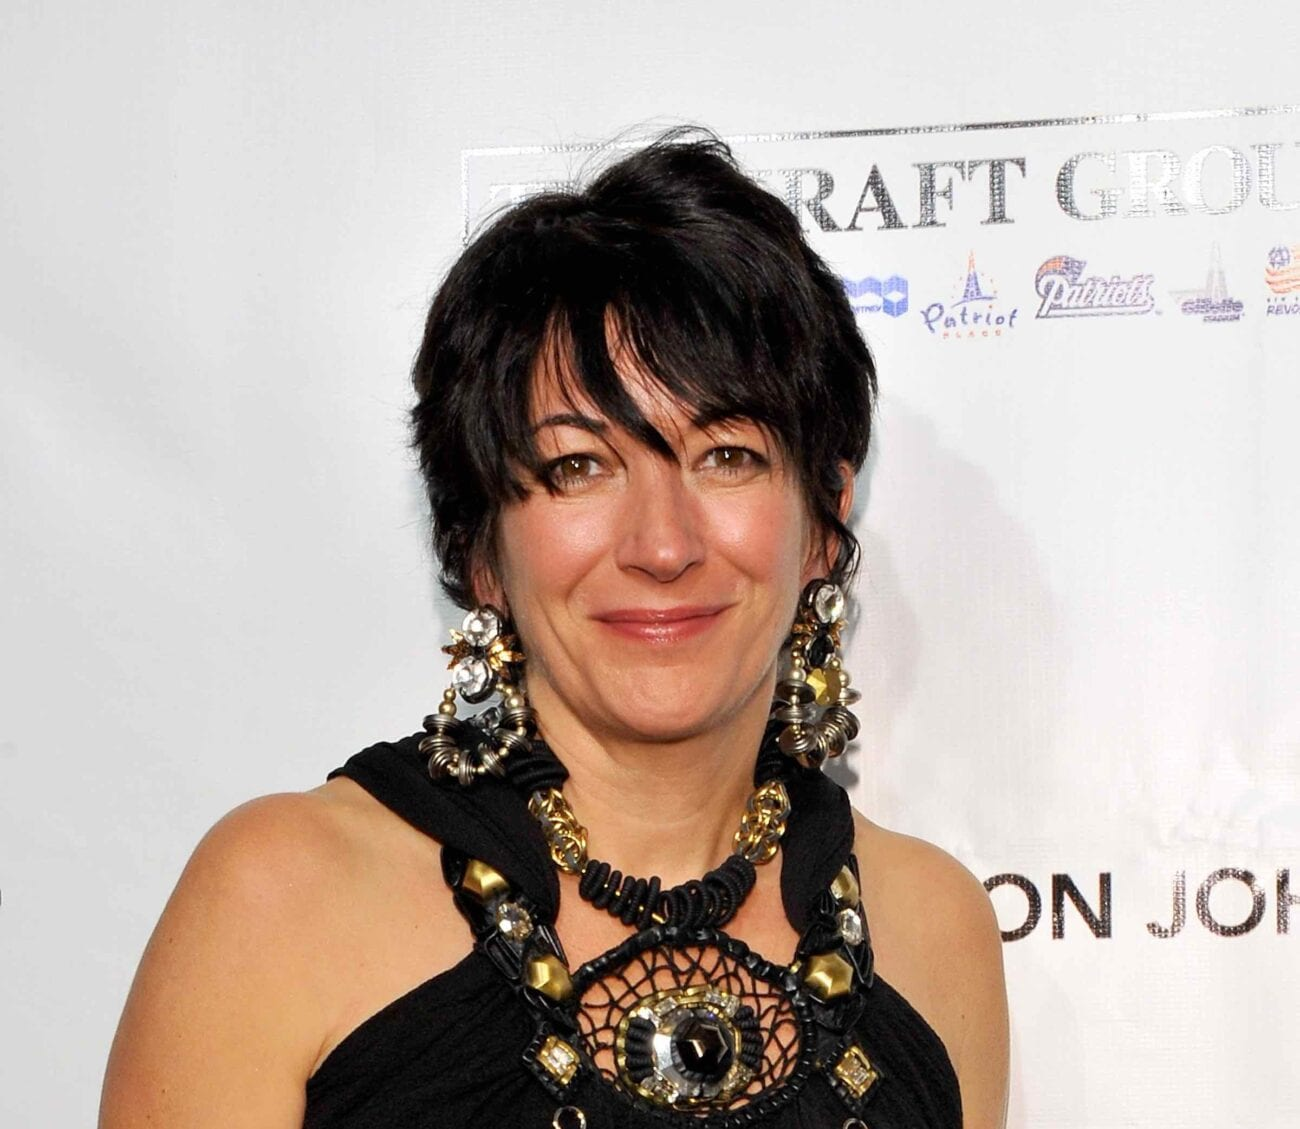 Victims of Jeffrey Epstein & Ghislaine Maxwell are seeking reparations for the abuse they endured. Here are the current lawsuits against Ghislaine Maxwell.